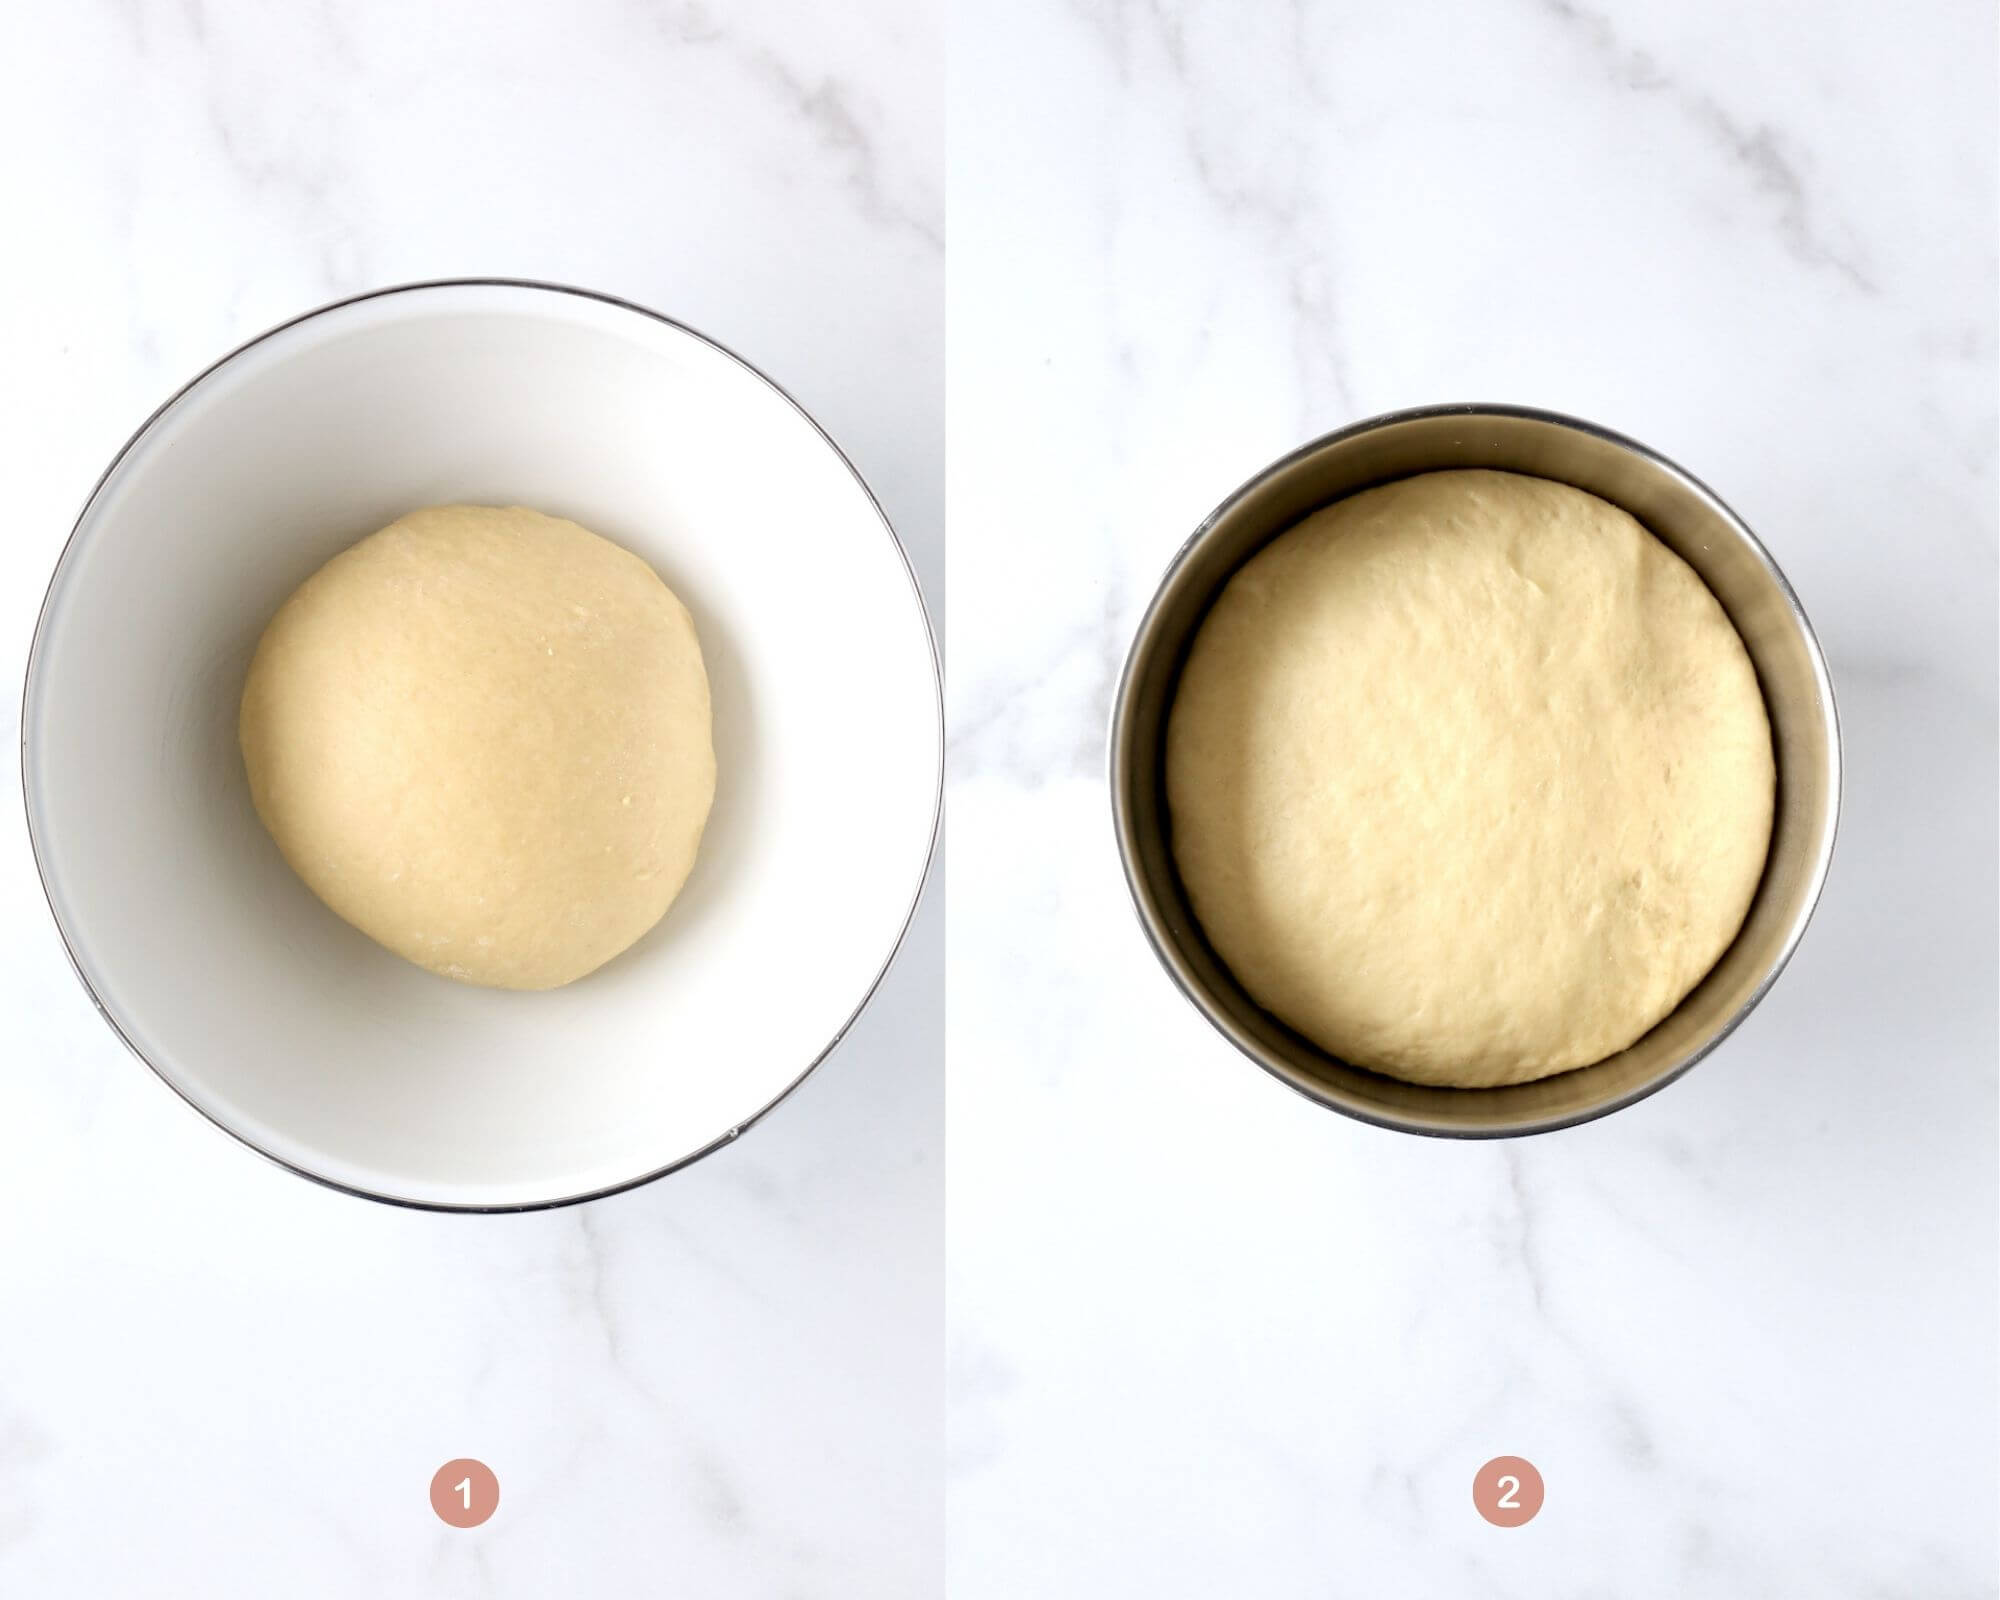 dough proofing in a bowl and dough after being proofed for an hour